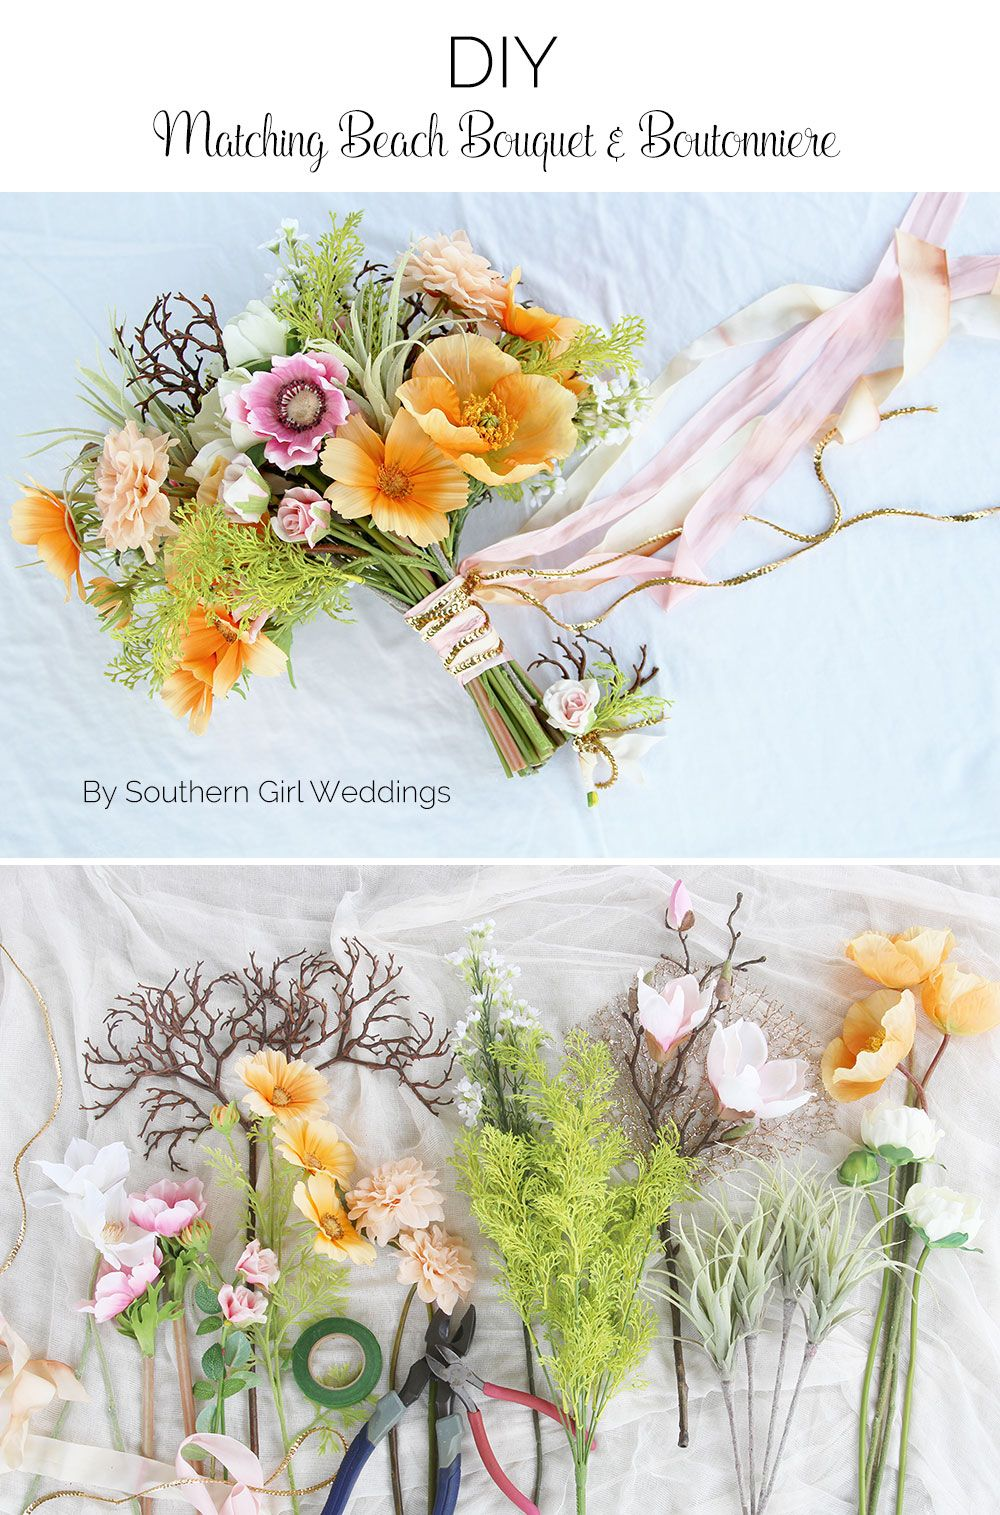 Diy bouquet boutonniere beach theme beach wedding pinterest learn how to make your own beach themed wedding bouquet and matching boutonniere with this simple mightylinksfo